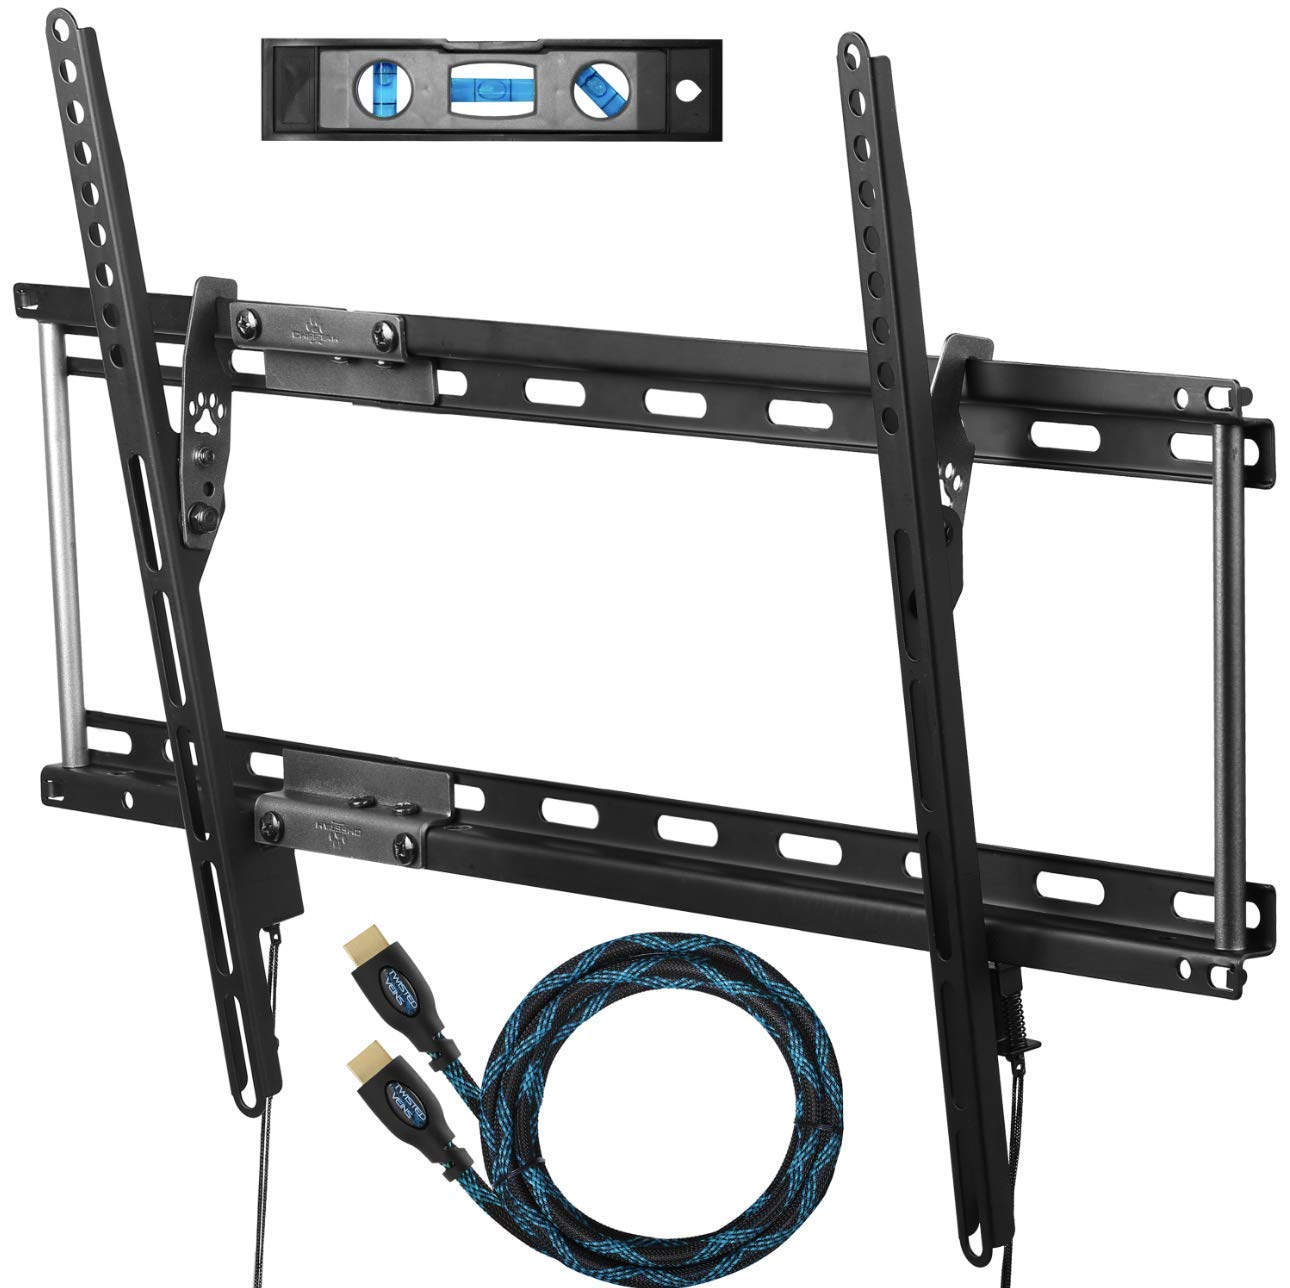 "Cheetah Mounts APTMM2B TV Wall Mount Bracket for 20-75"" TVs up to VESA 600 and 165lbs, Fits 16"" And 24"" Wall Studs, and includes a 10' Twisted Veins HDMI Cable and a 6"" 3-Axis Magnetic Bubble Level"